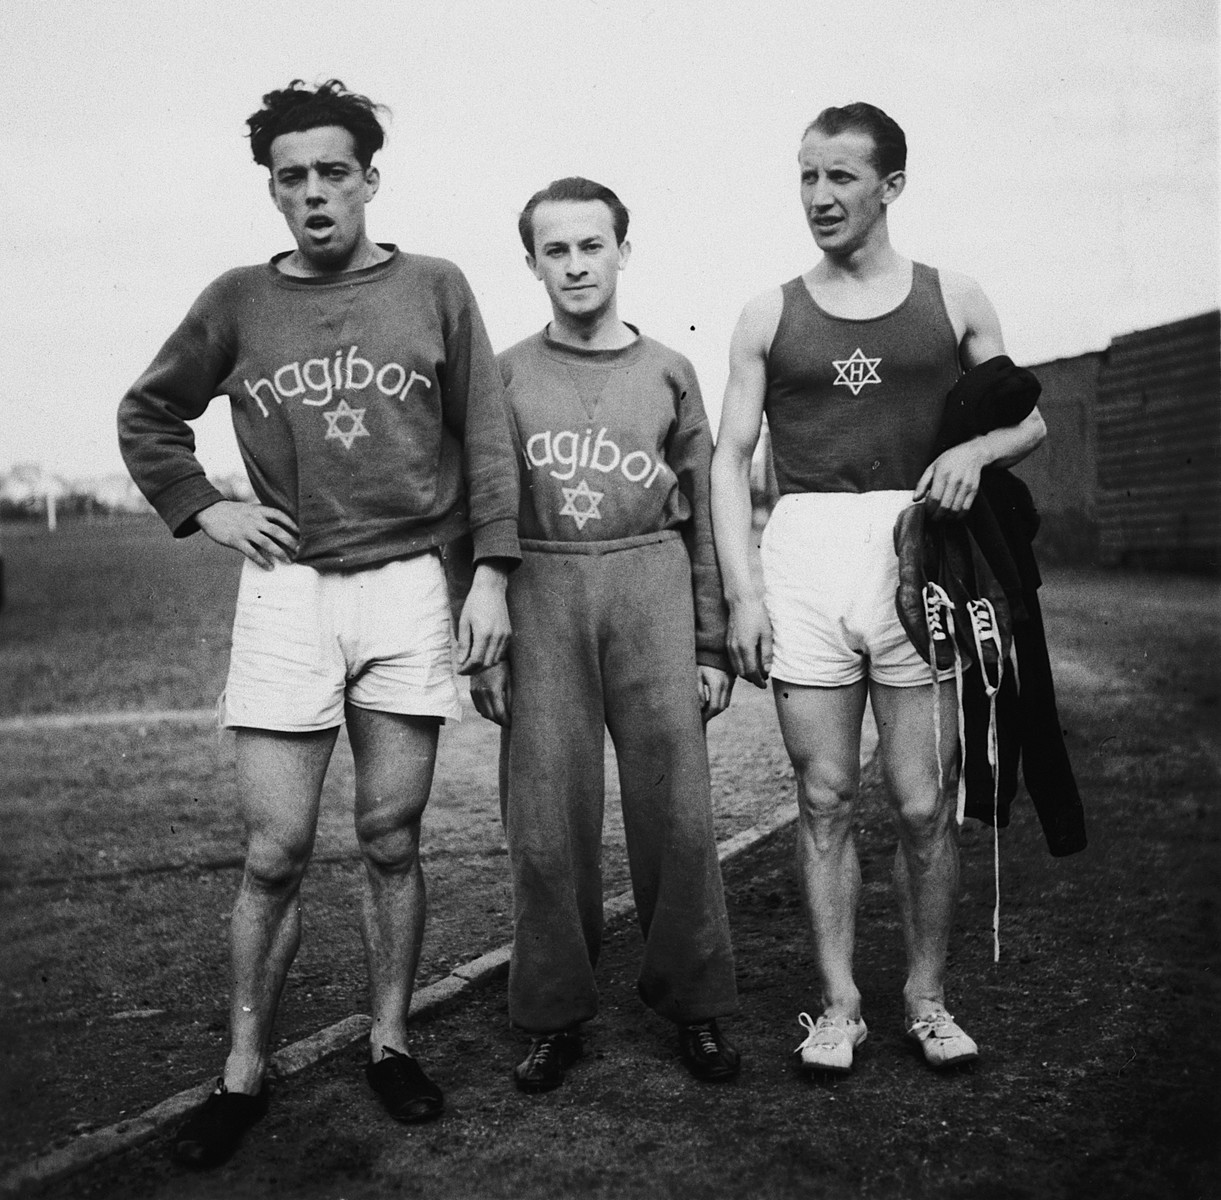 Three members of the track and field team of Hagibor sports club in Prague.  Among those pictured is Robert Goldschmied (left).  He was a cousin of Katerina Margolius.  Robert immigrated to Ecuador before World War II.